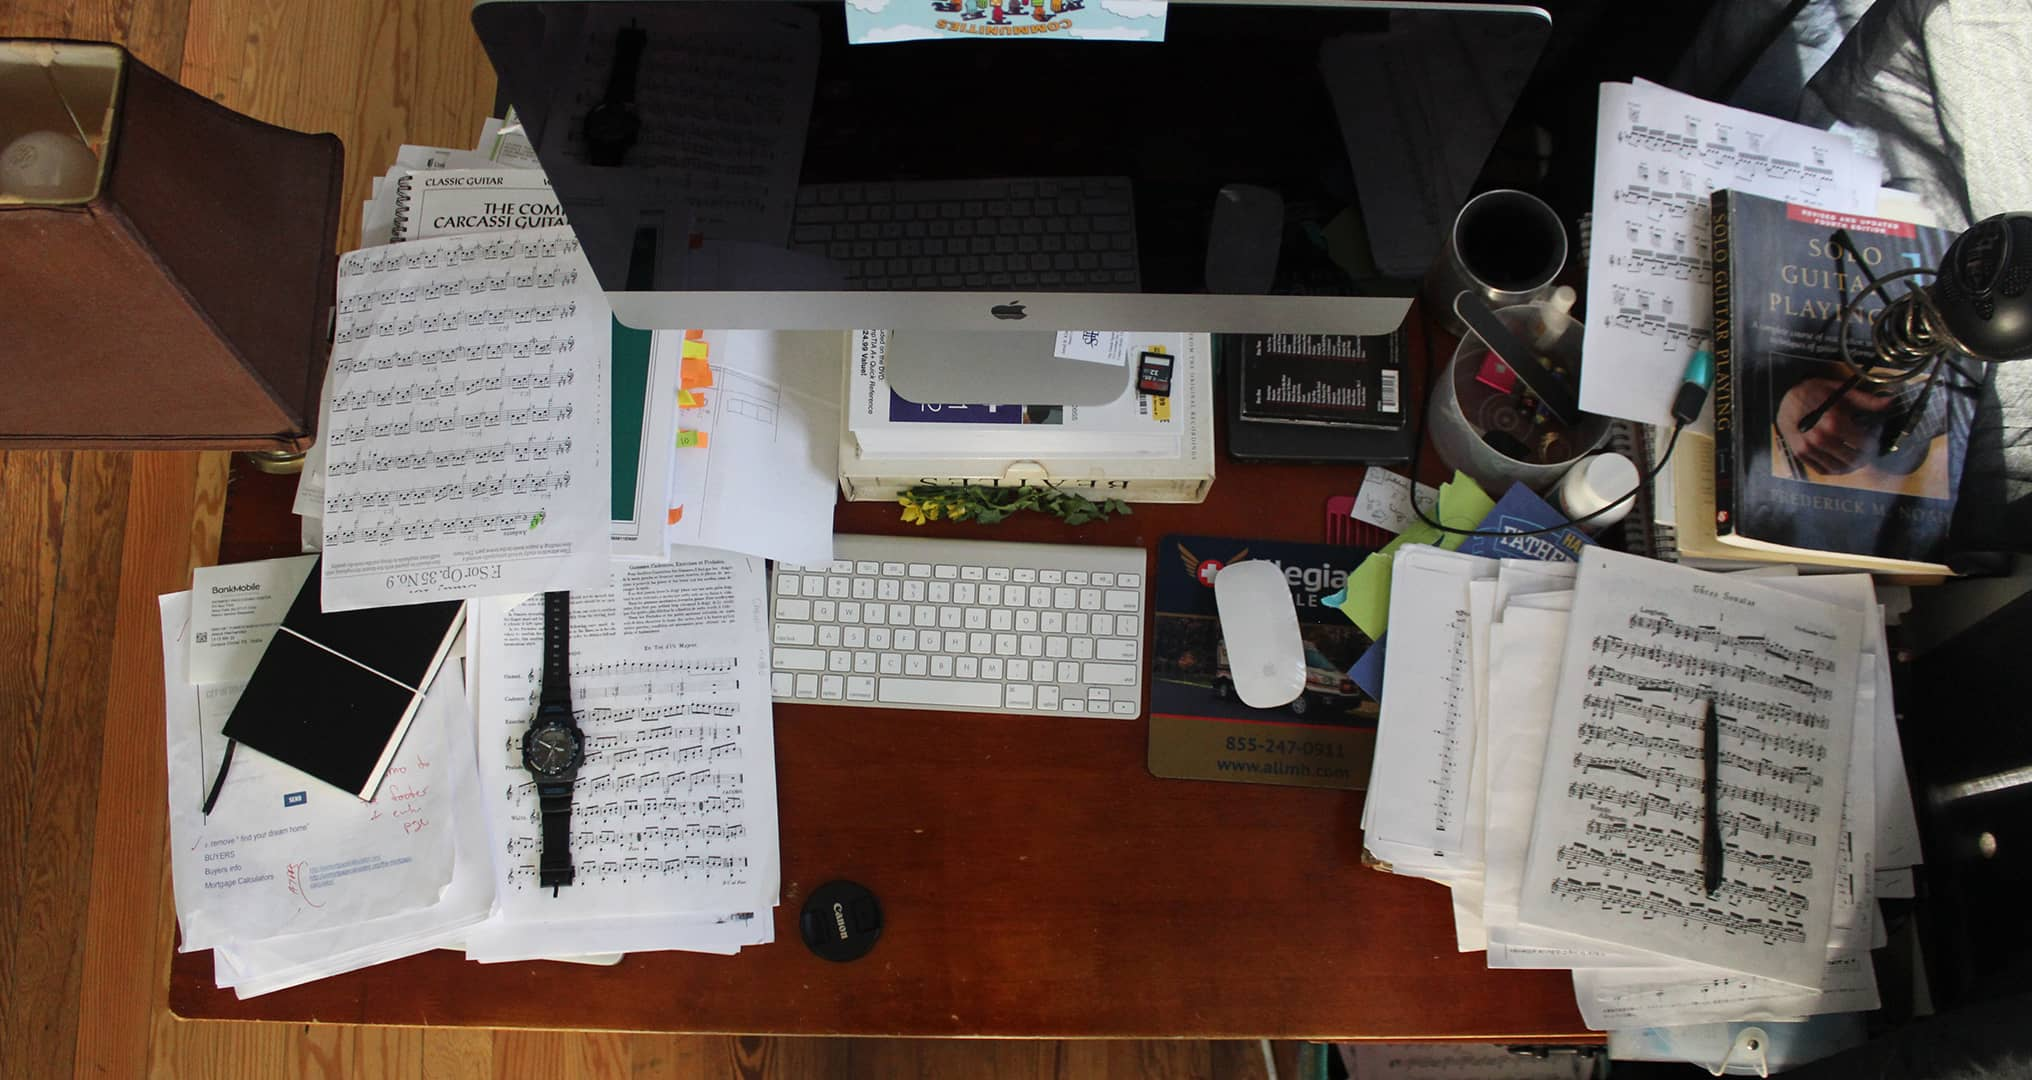 Messy office desk leads to distractions